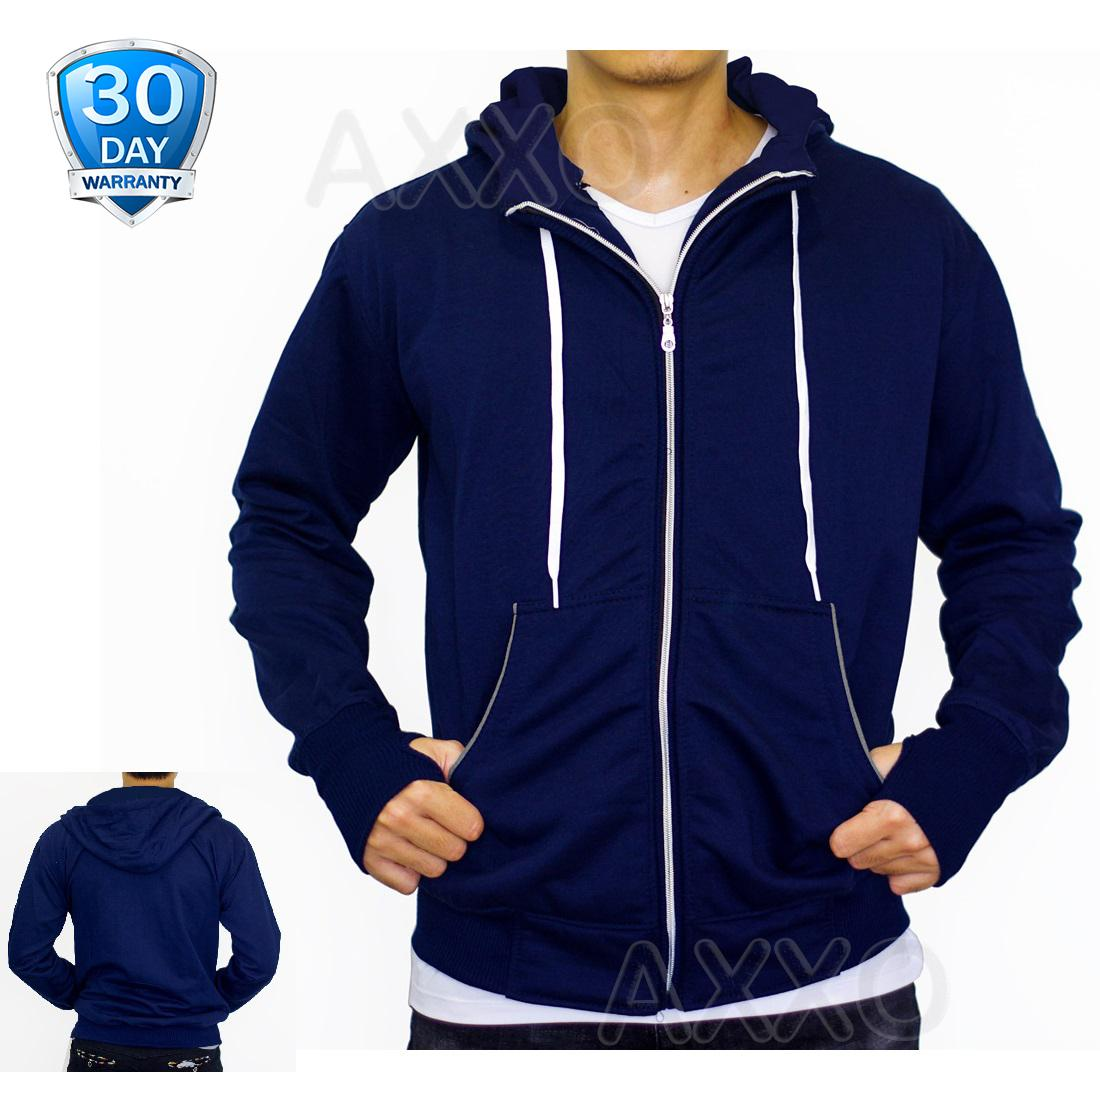 Jaket Sweater Hoodie Polos Switer Lubang Jempol Model Ariel Jaket Model  Korea Pria Mens Jacket Windproof d7623ec496